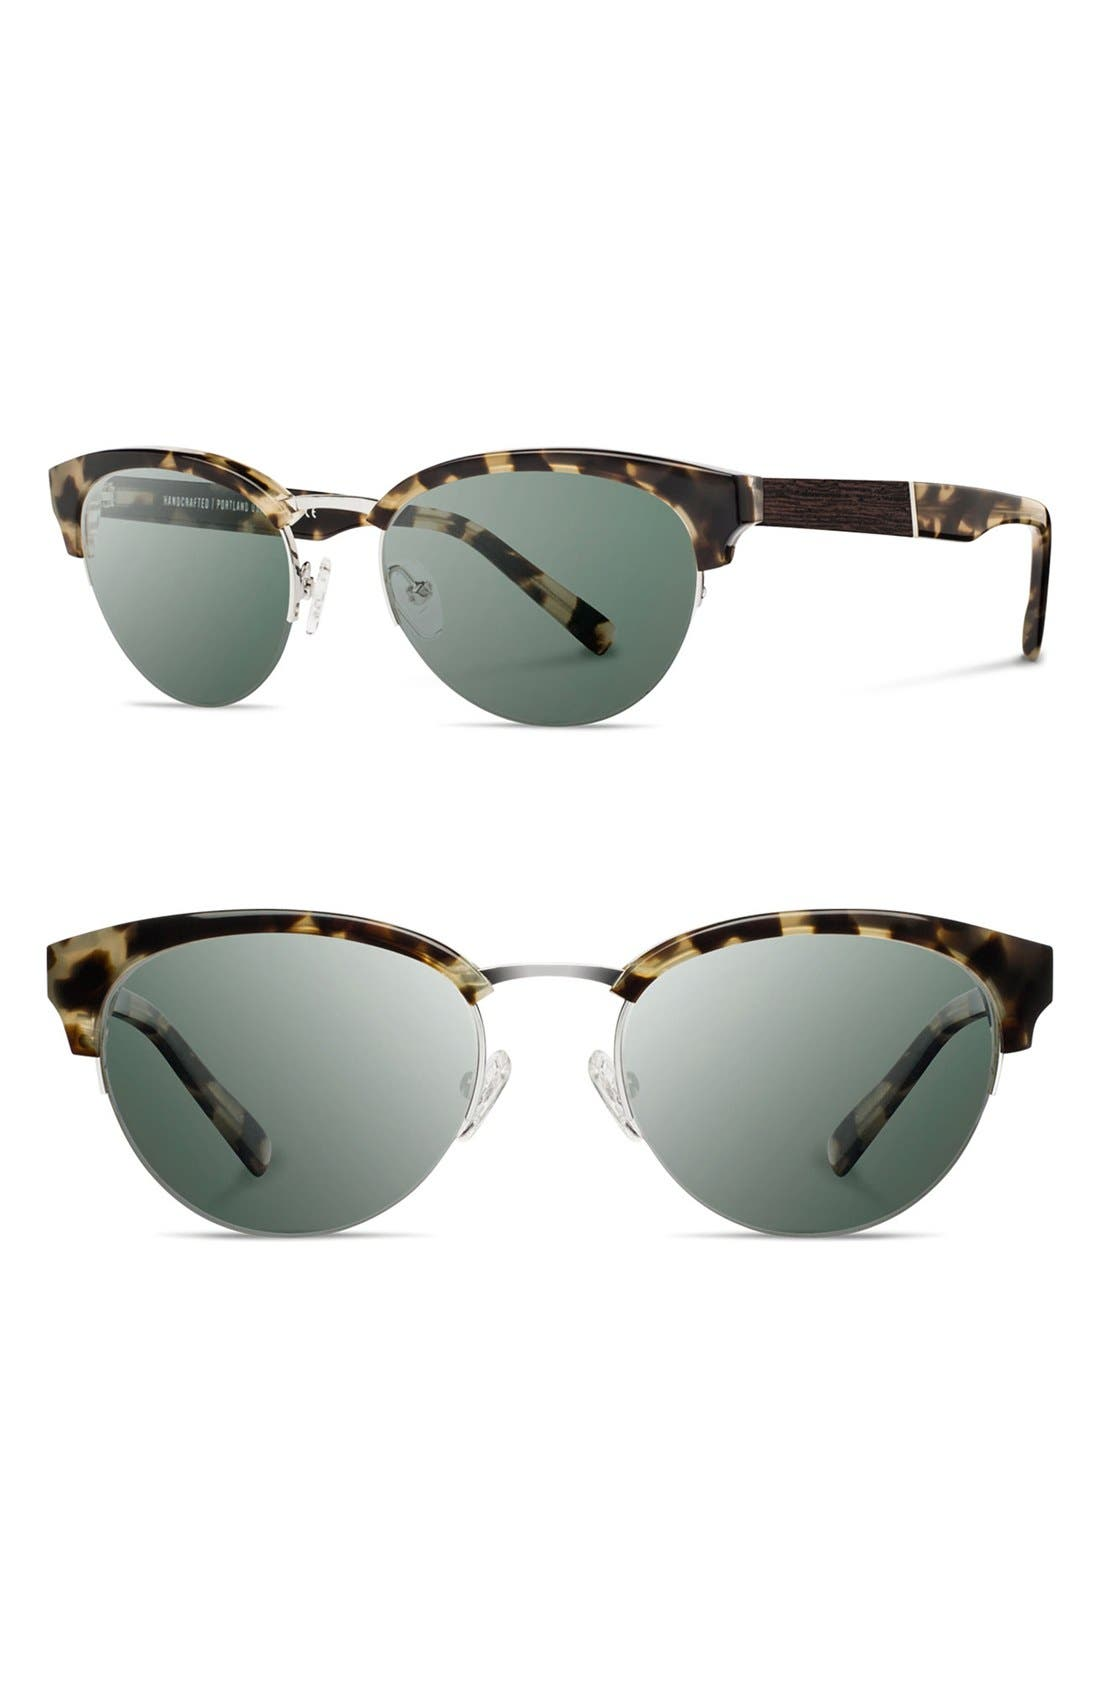 Main Image - Shwood 'Hayden' 53mm Acetate & Wood Sunglasses